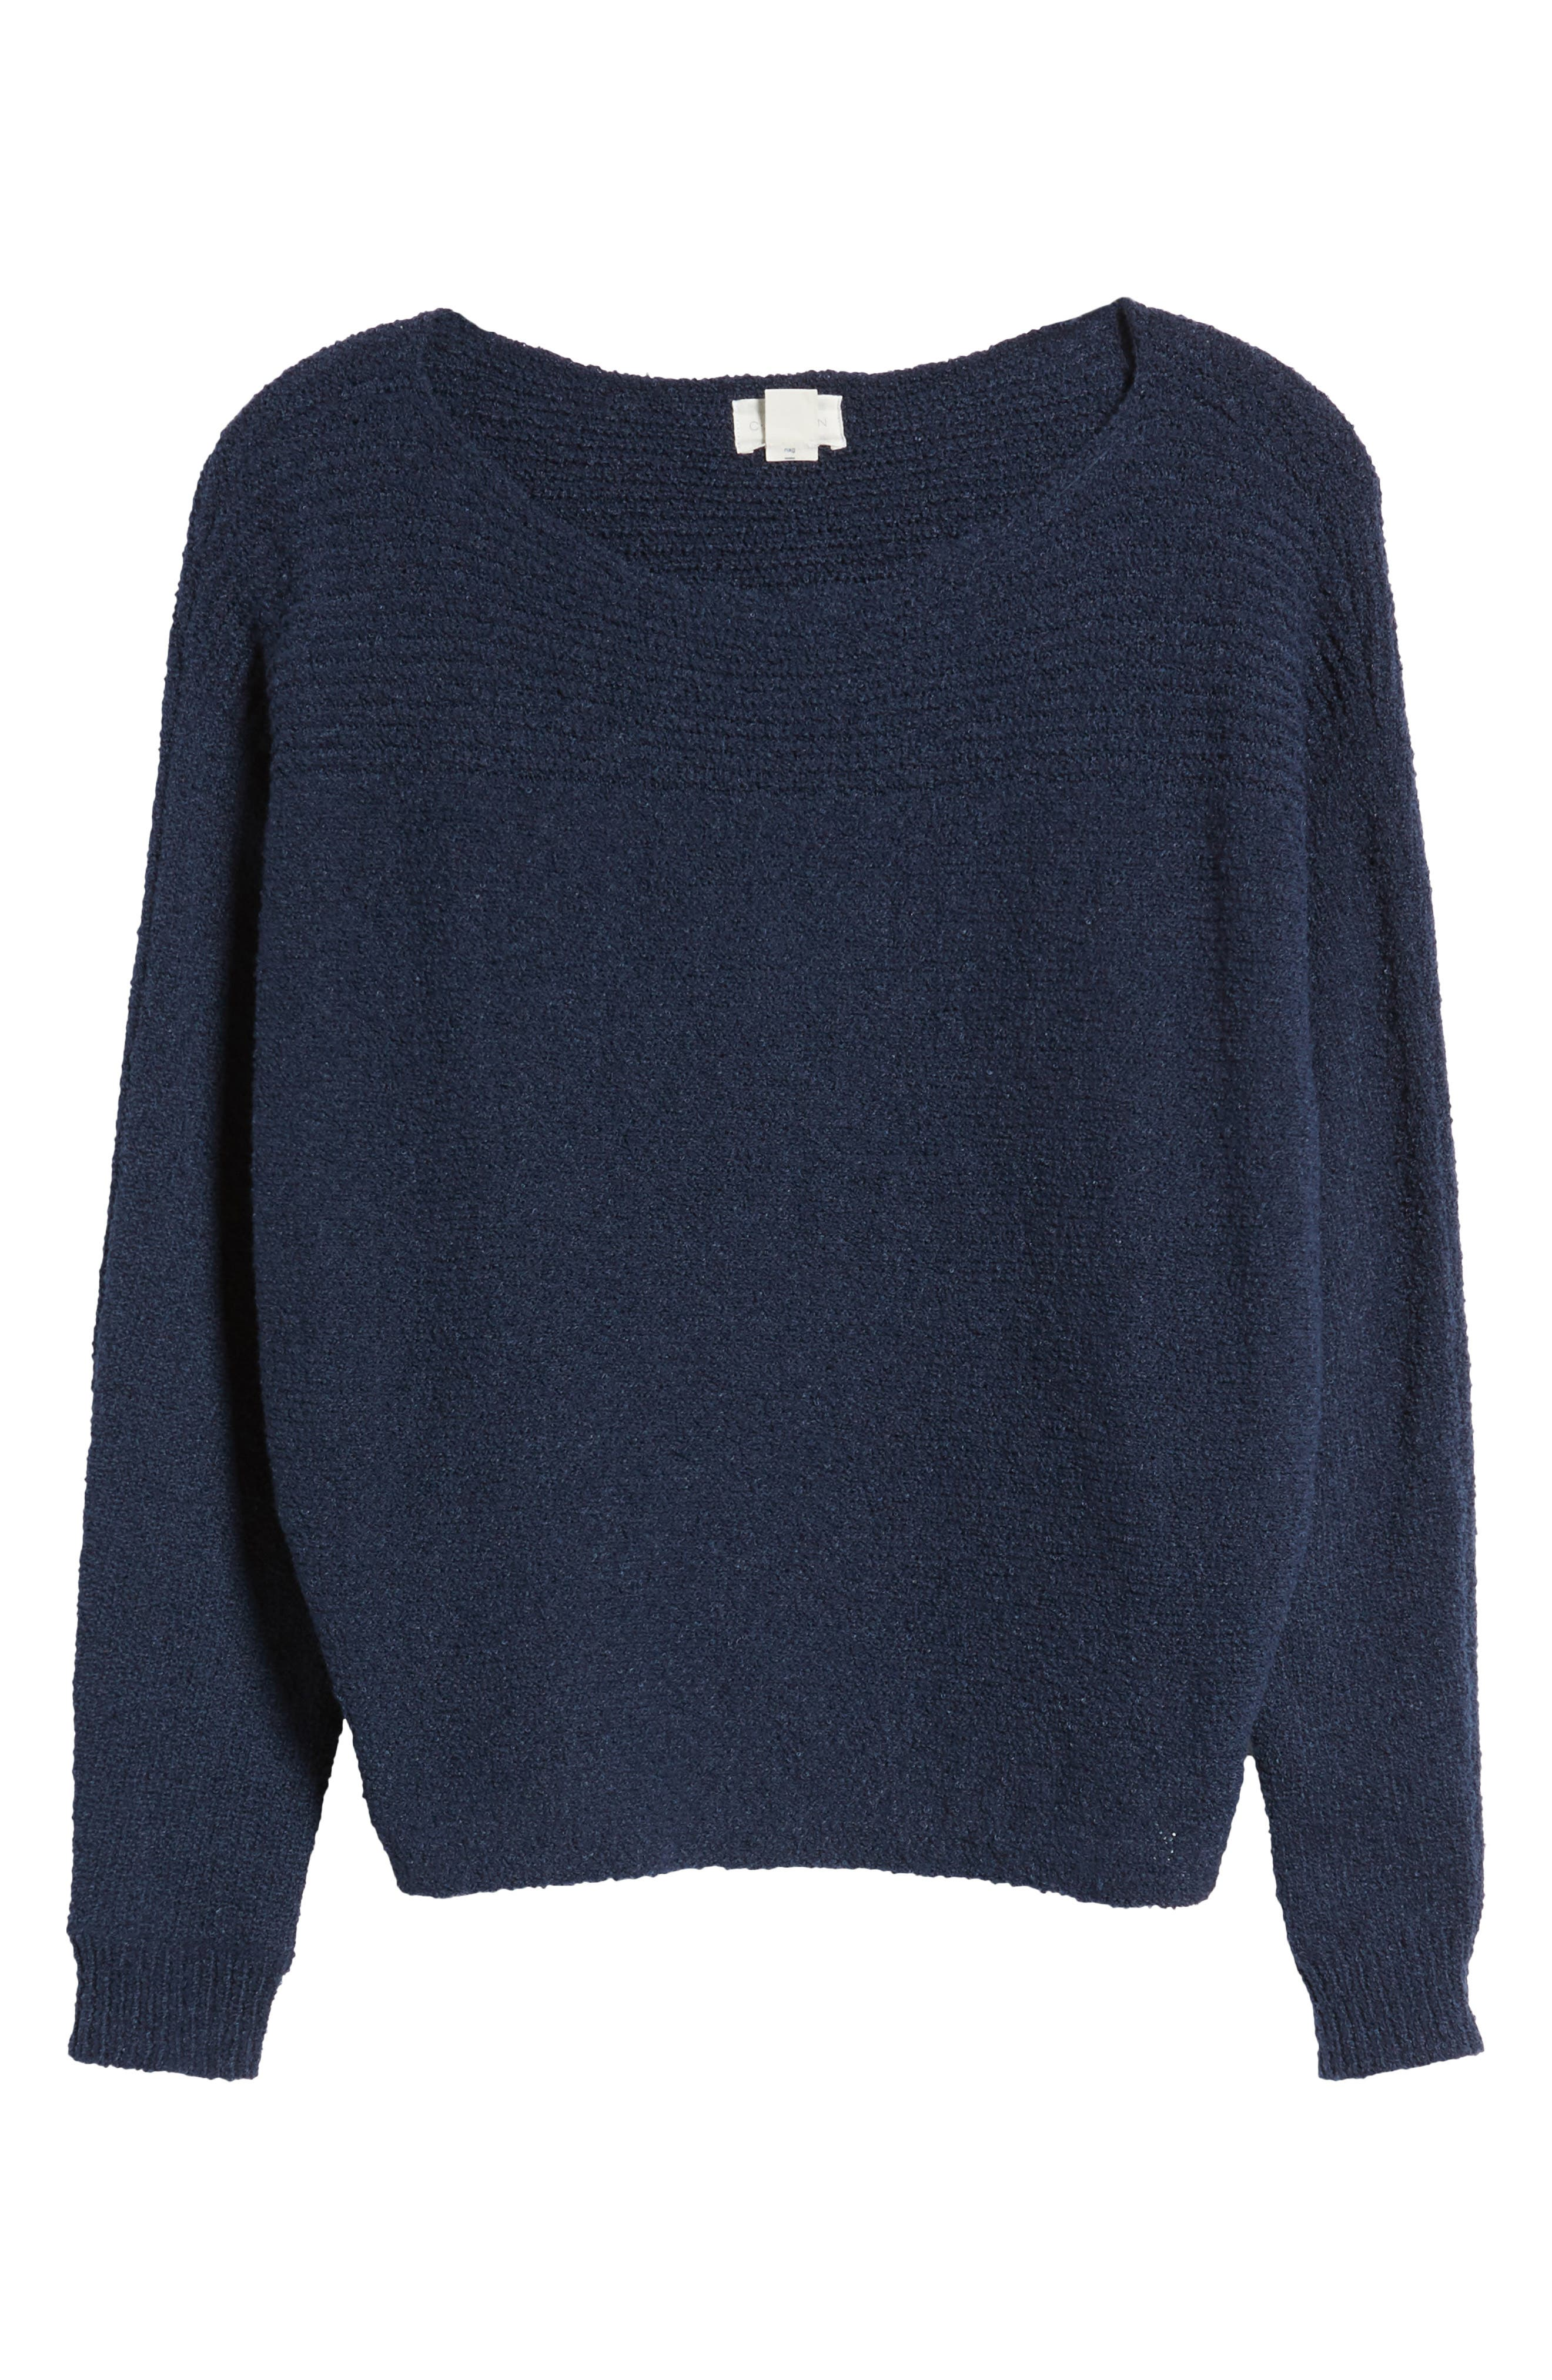 Calson<sup>®</sup> Dolman Sleeve Sweater,                             Alternate thumbnail 7, color,                             410